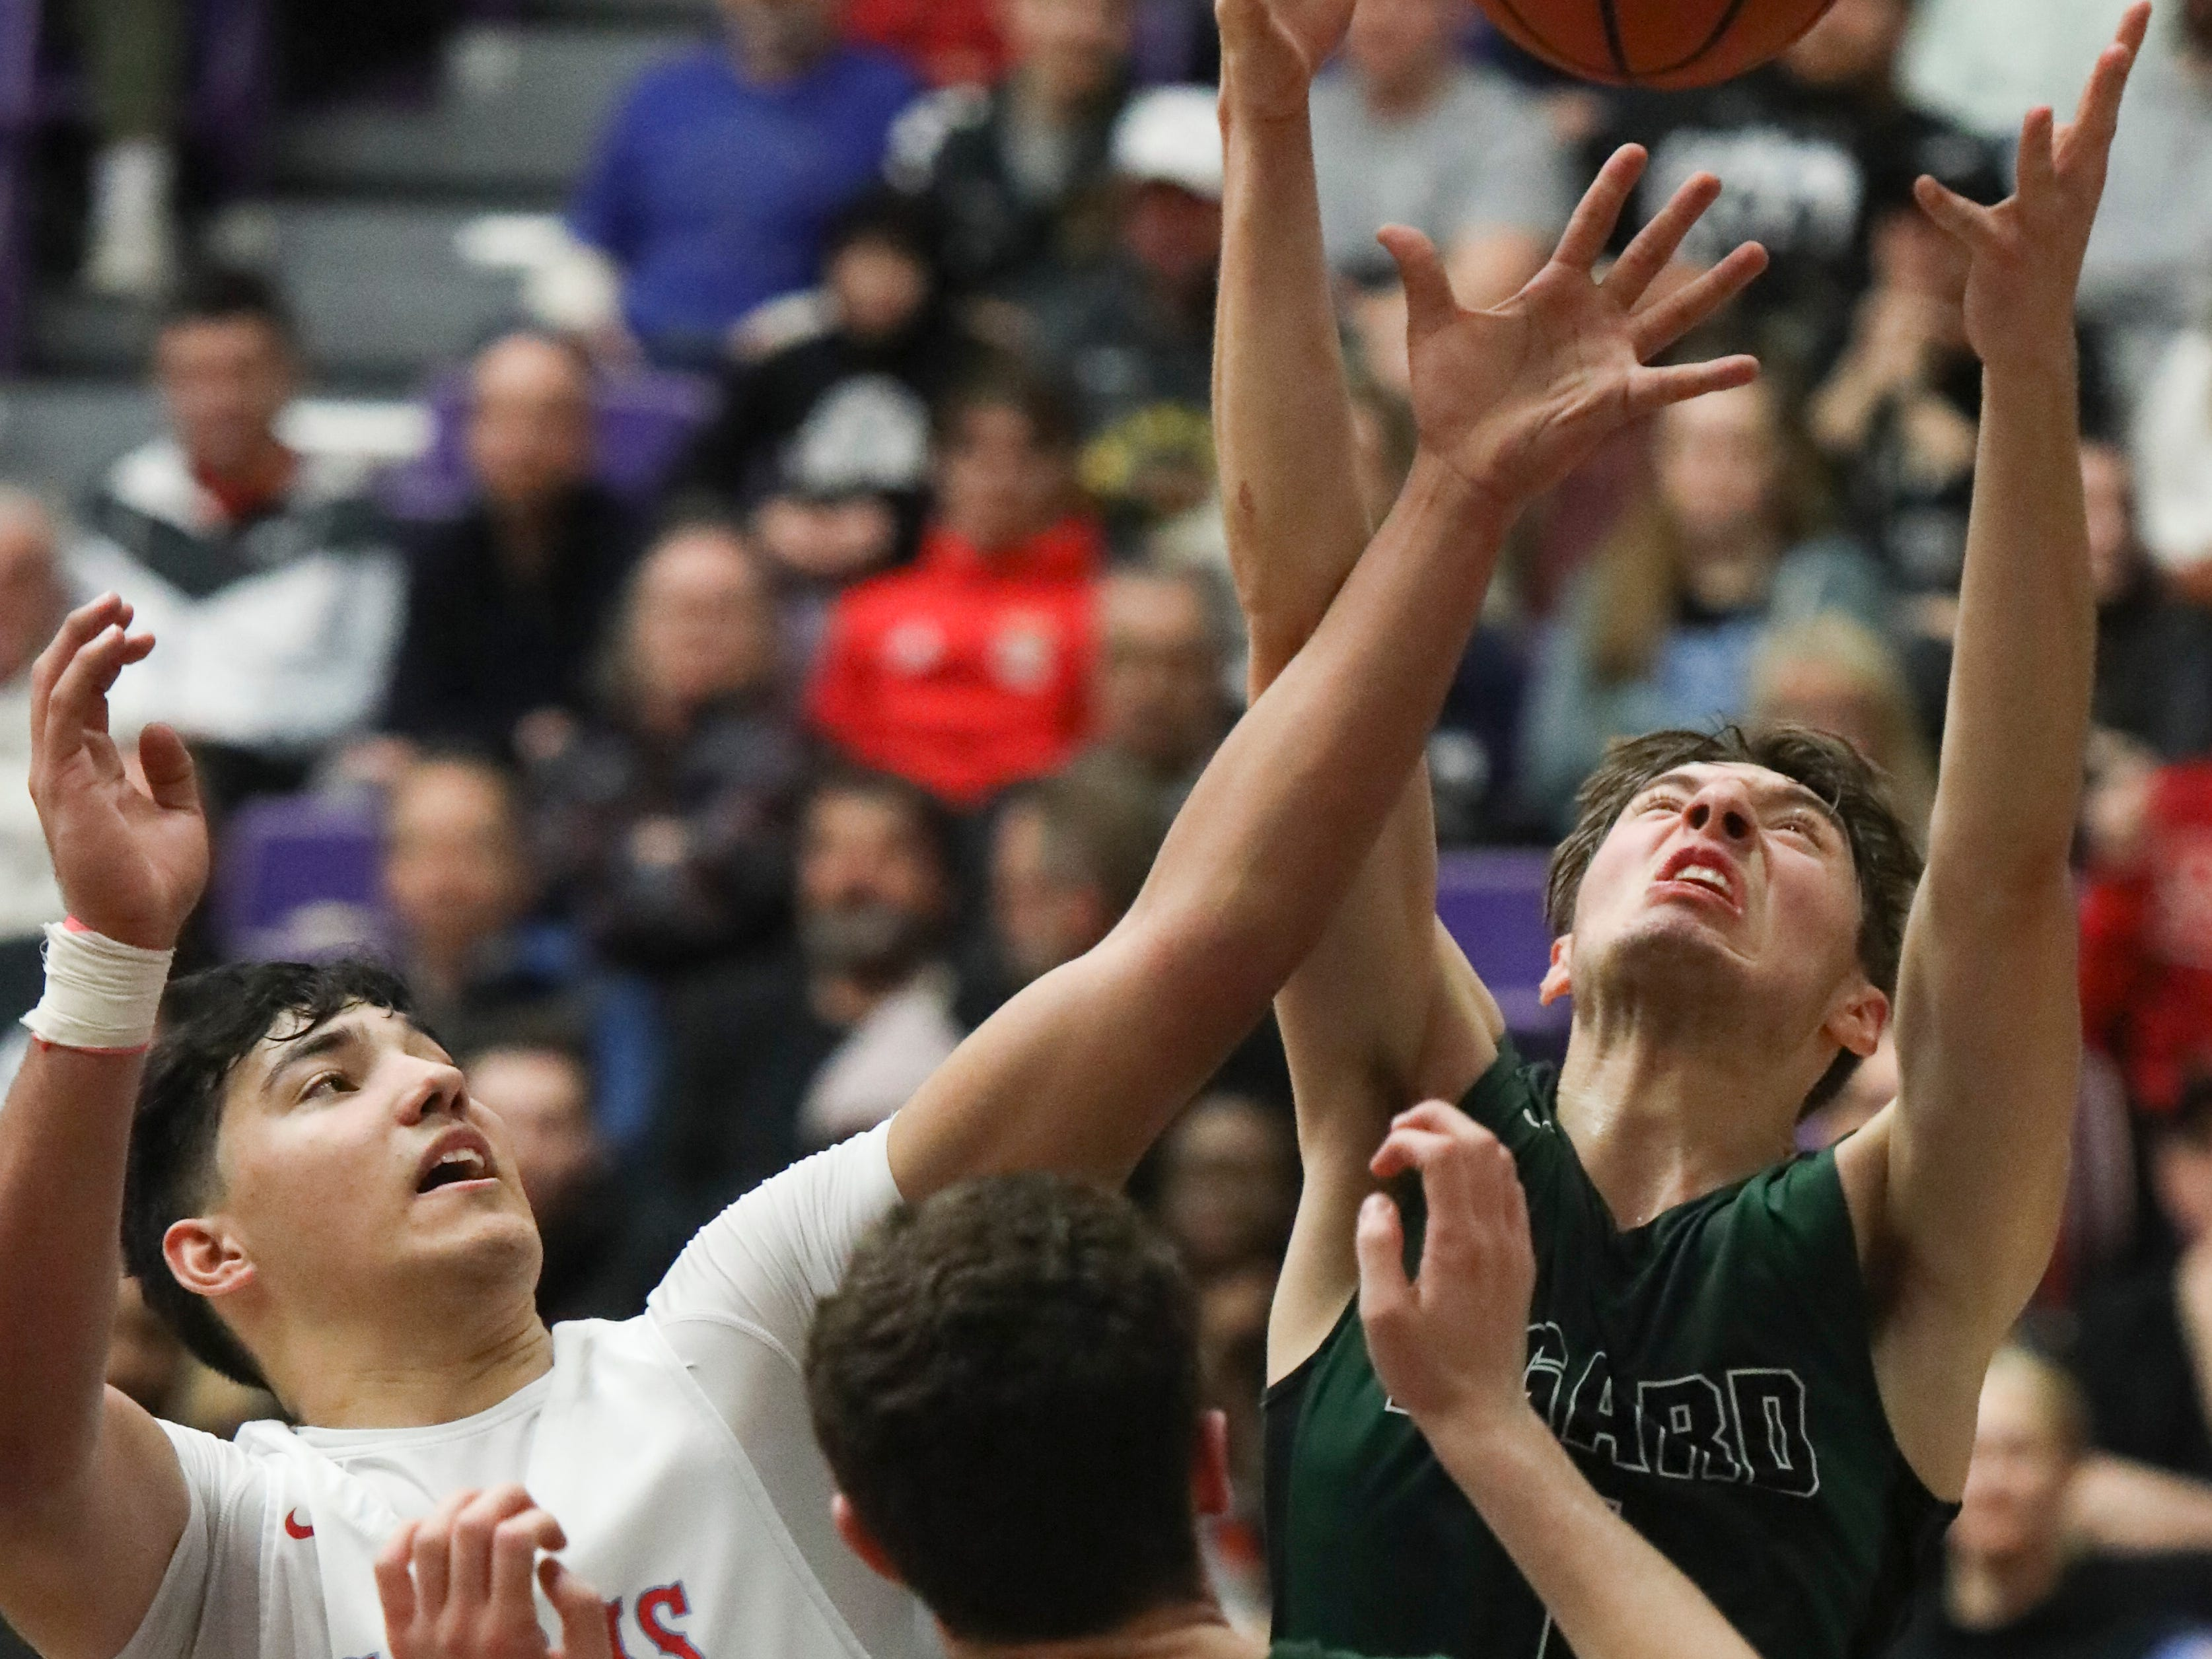 South Salem's Treyden Harris (0) fights for a rebound with Tigard's Luke Ness (20) and Diego Lopez (1) during the OSAA 6A boys basketball state tournament quarterfinal on Wednesday, March 6 at Chiles Center.